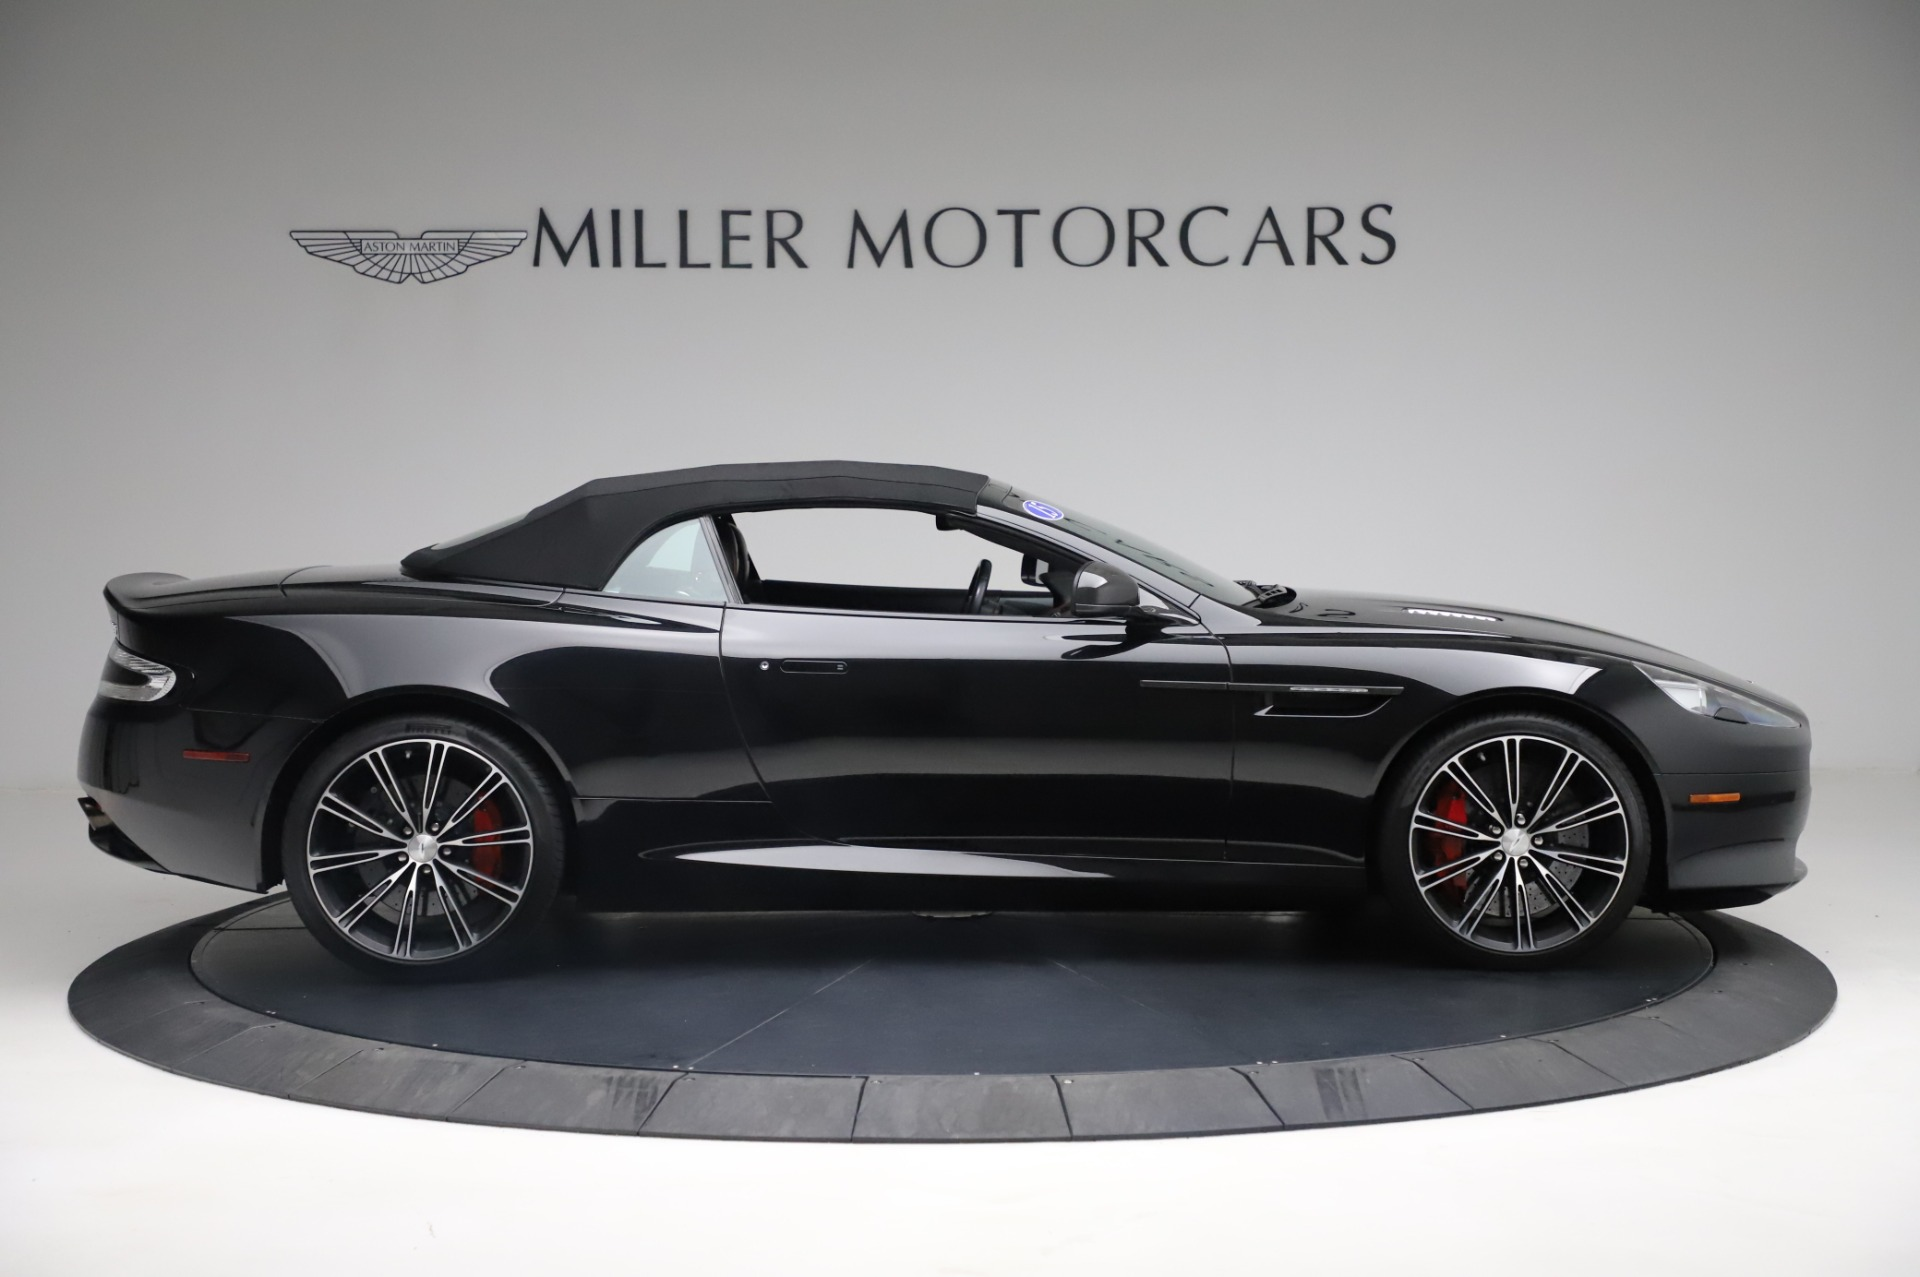 Used 2015 Aston Martin DB9 Convertible For Sale In Greenwich, CT 1919_p18